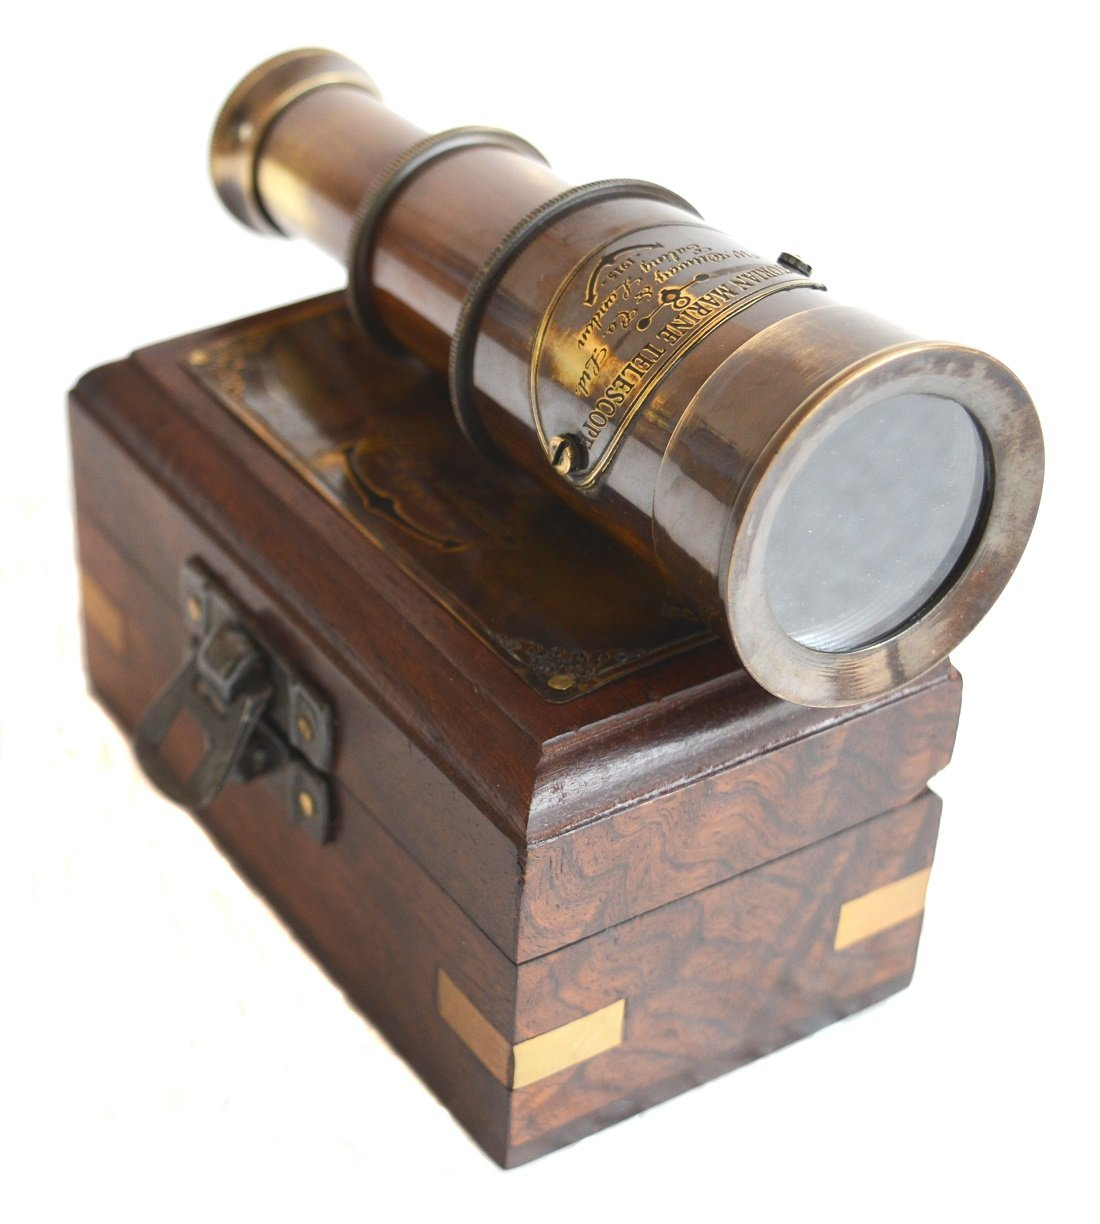 SA International Brass Antique Finish 6'''' Victorian Marine Handheld Mini Telescope with Wooden Box Nautical Gift by SA International (Image #1)